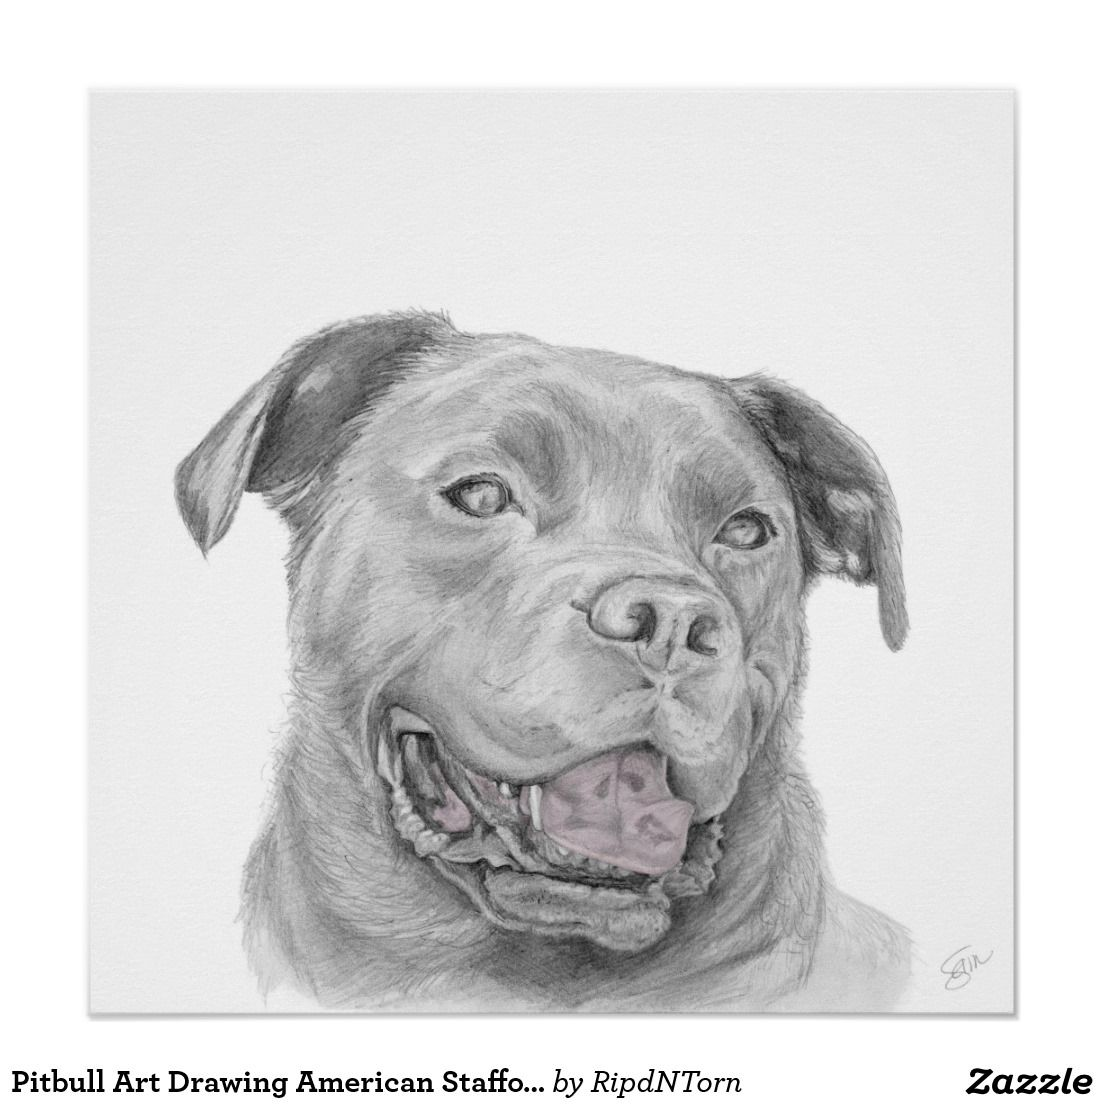 Pitbull Art Drawing American Staffordshire Terrier Poster Zazzle